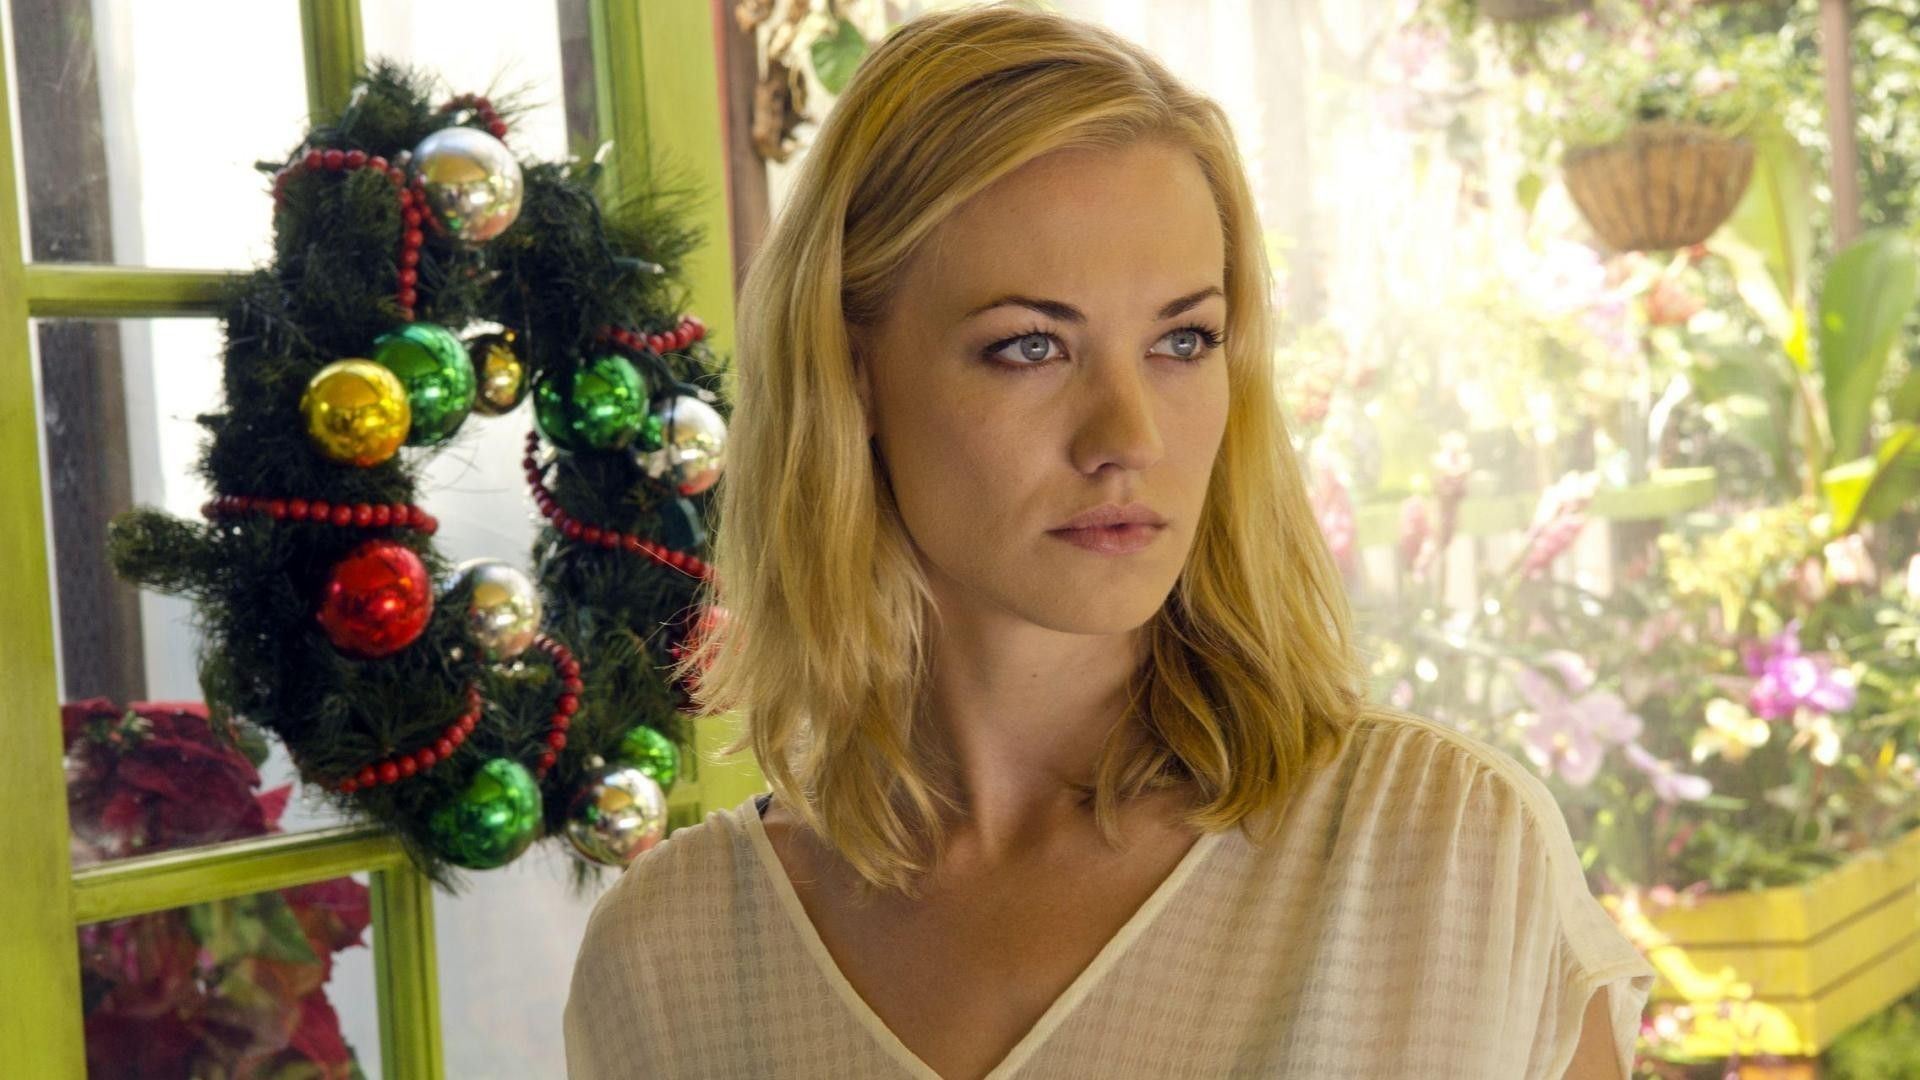 Women Tv Dexter Blonde Yvonne Strahovski Tv Series Wallpaper Yvonne Strahovski Dexter Actresses